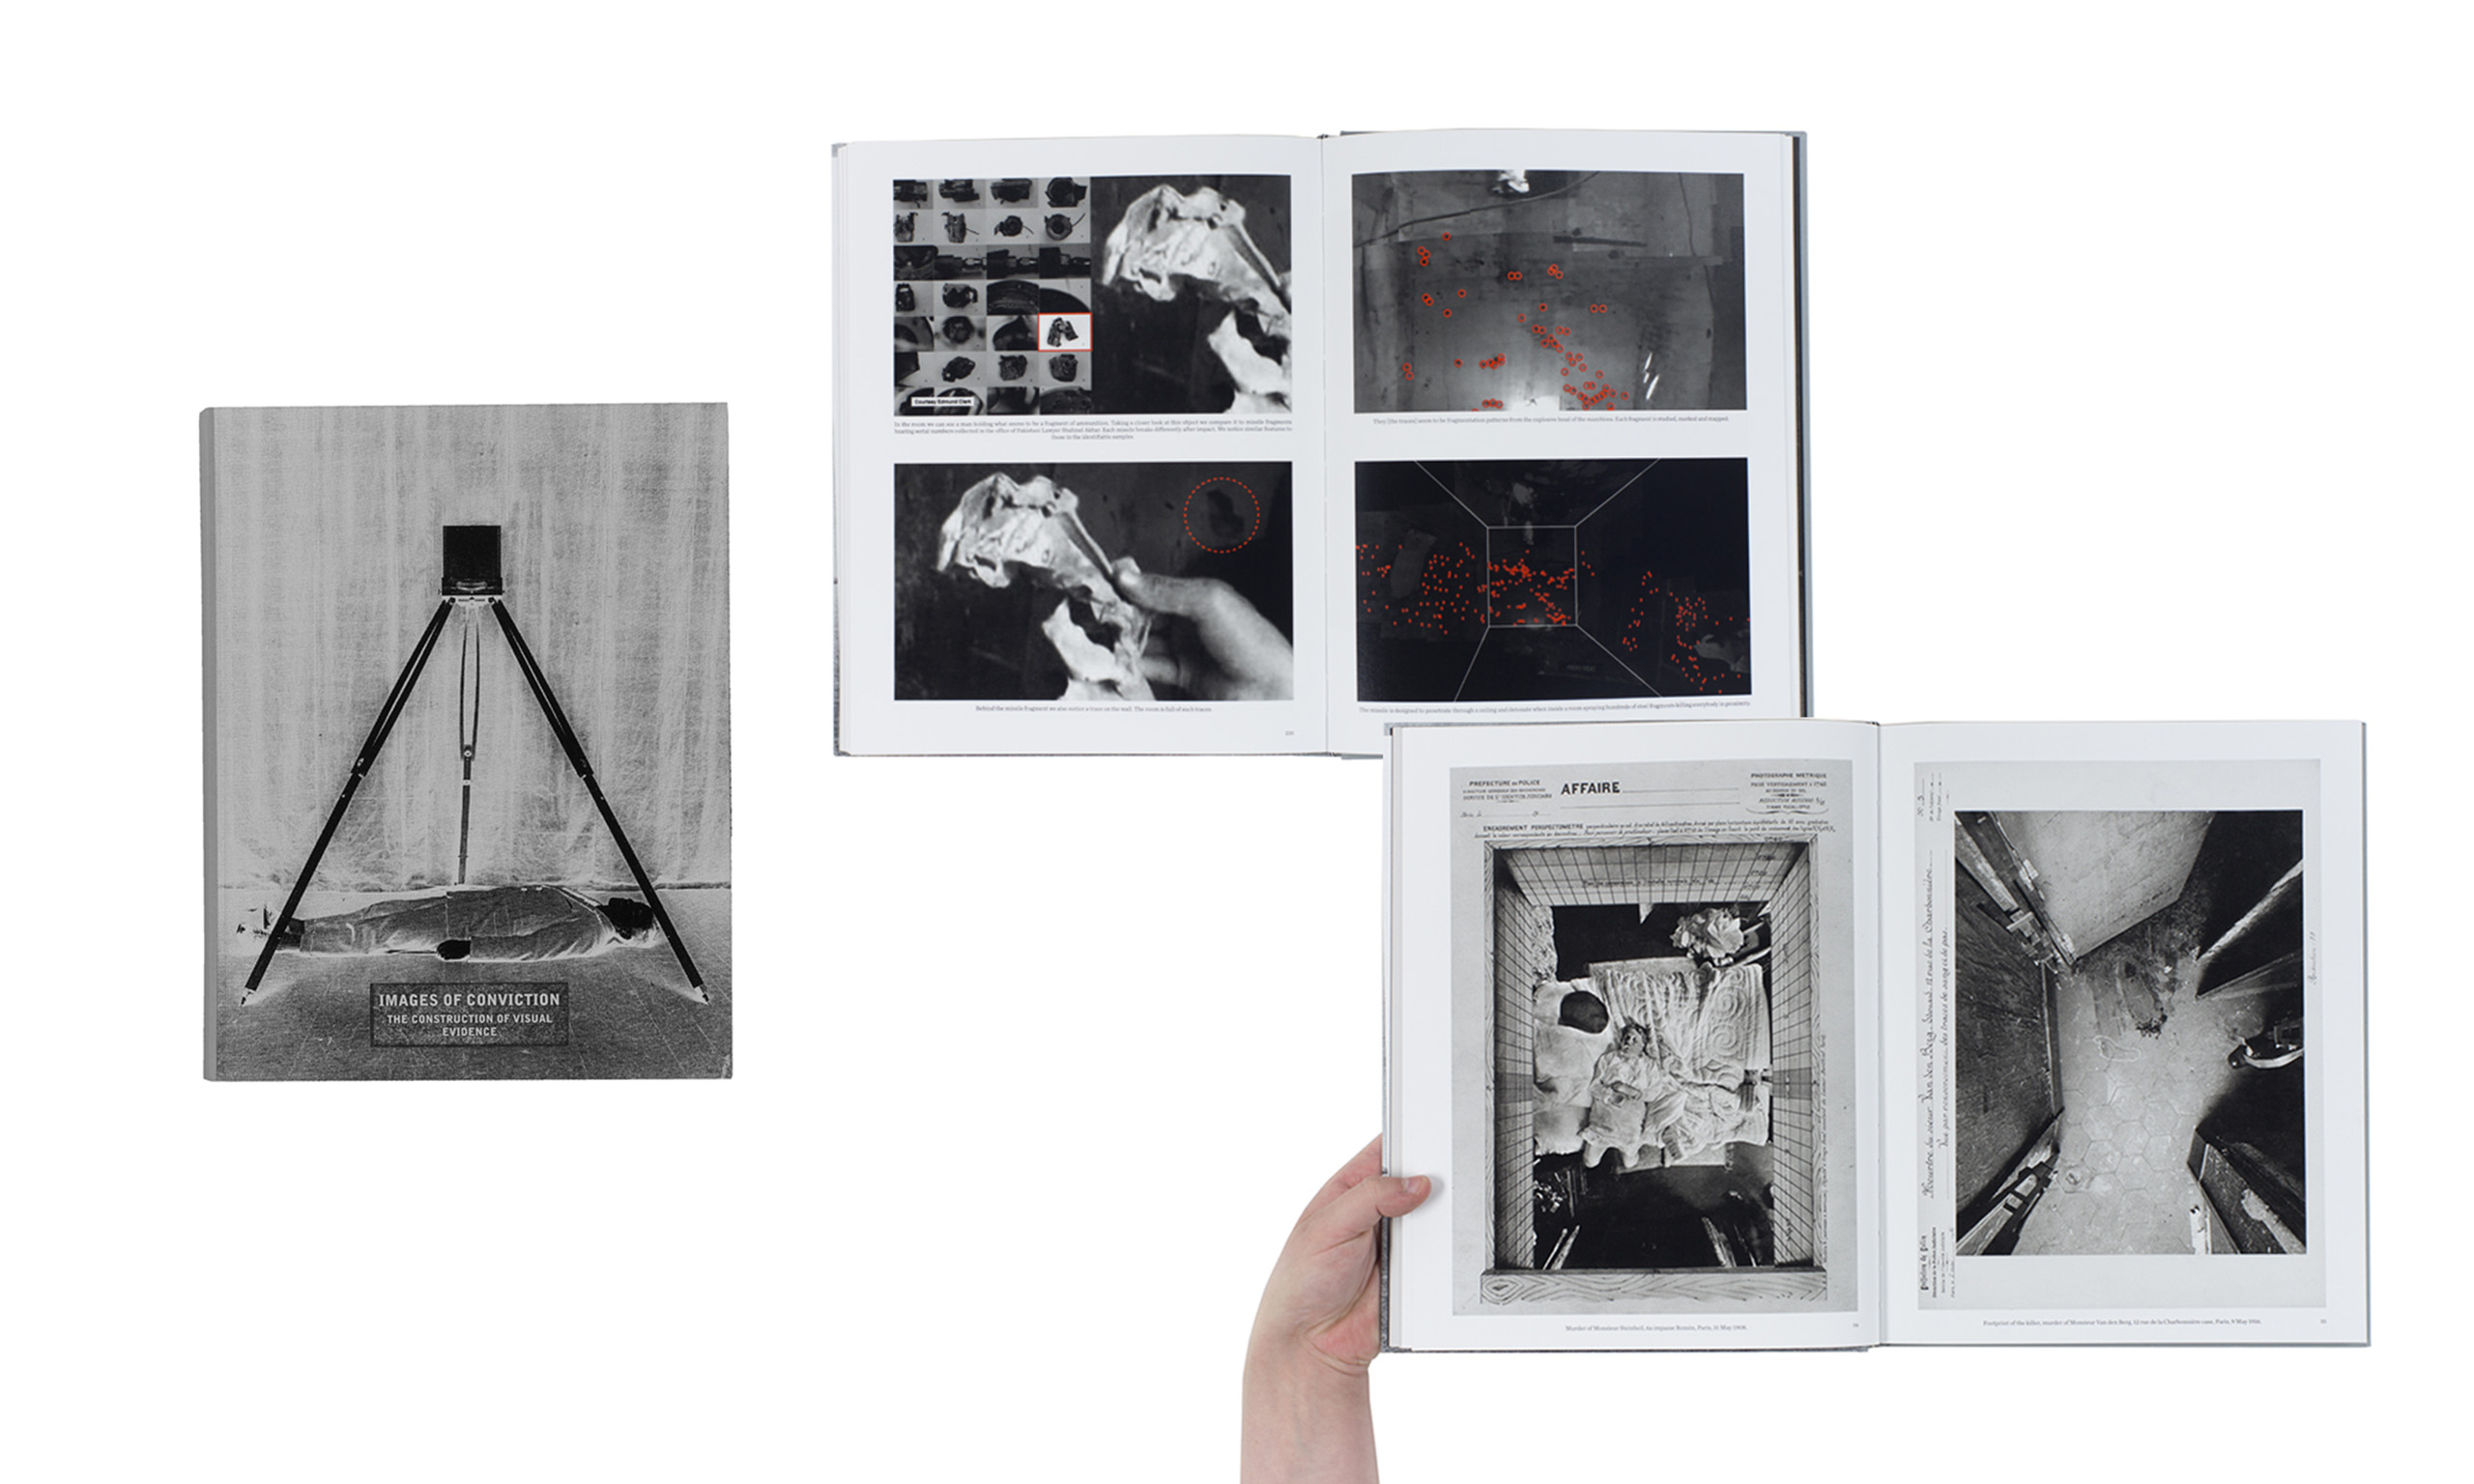 Images of Conviction: The Construction of Visual Evidence by Diane Dufour and Xavier Barral, published by Le Bal/Éditions Xavier Barral. Winner of the Photography Catalogue of the Year category.